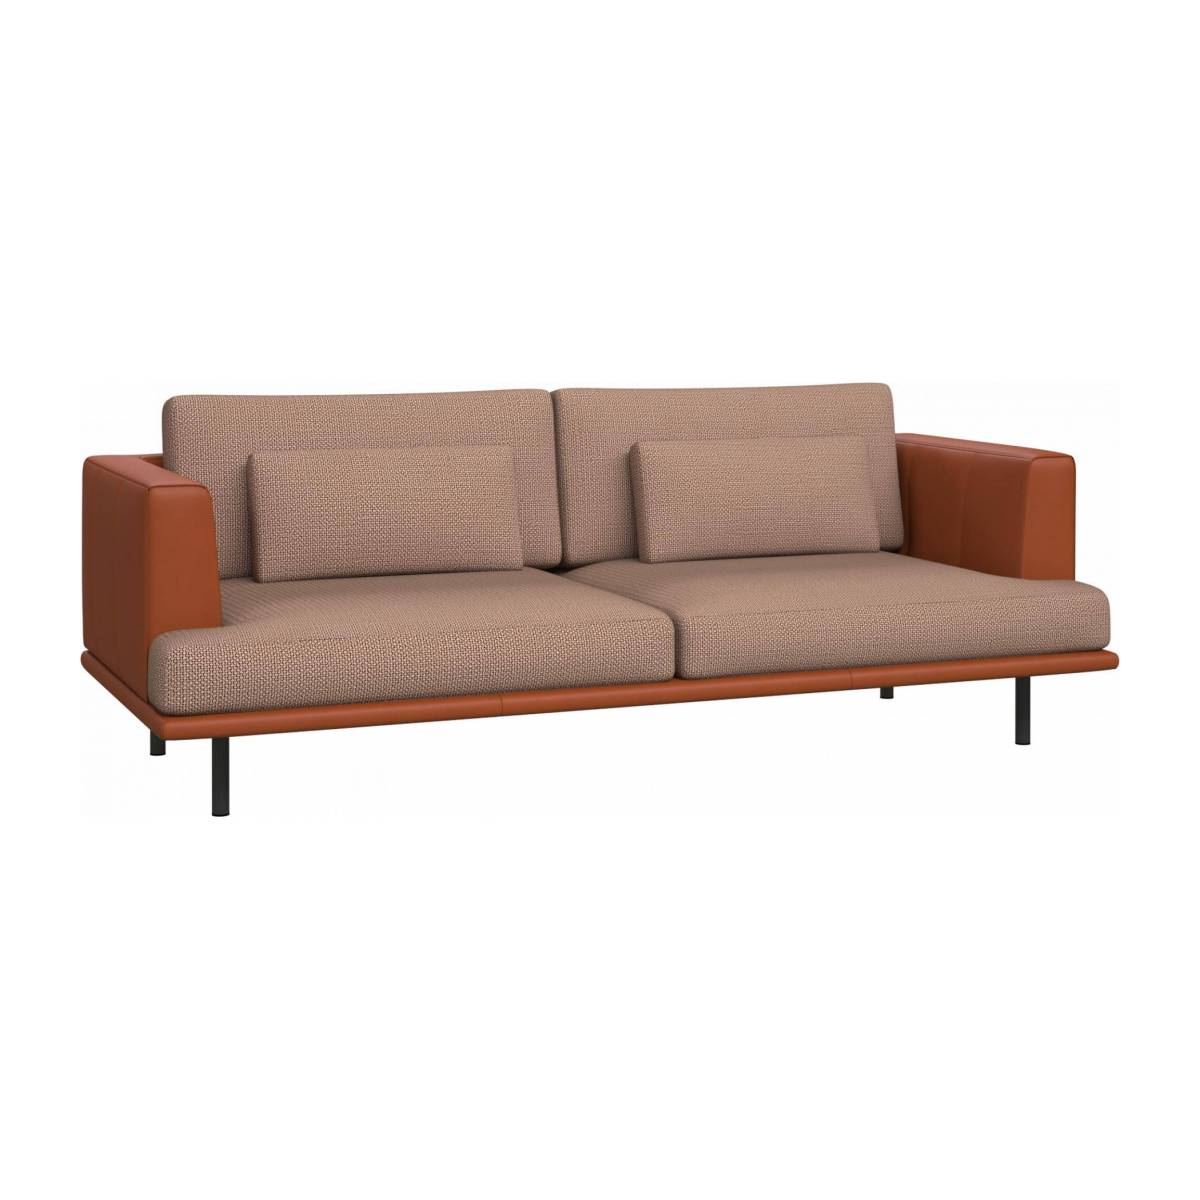 3 seater sofa in Fasoli fabric, jatoba brown with base and armrests in brown leather n°3